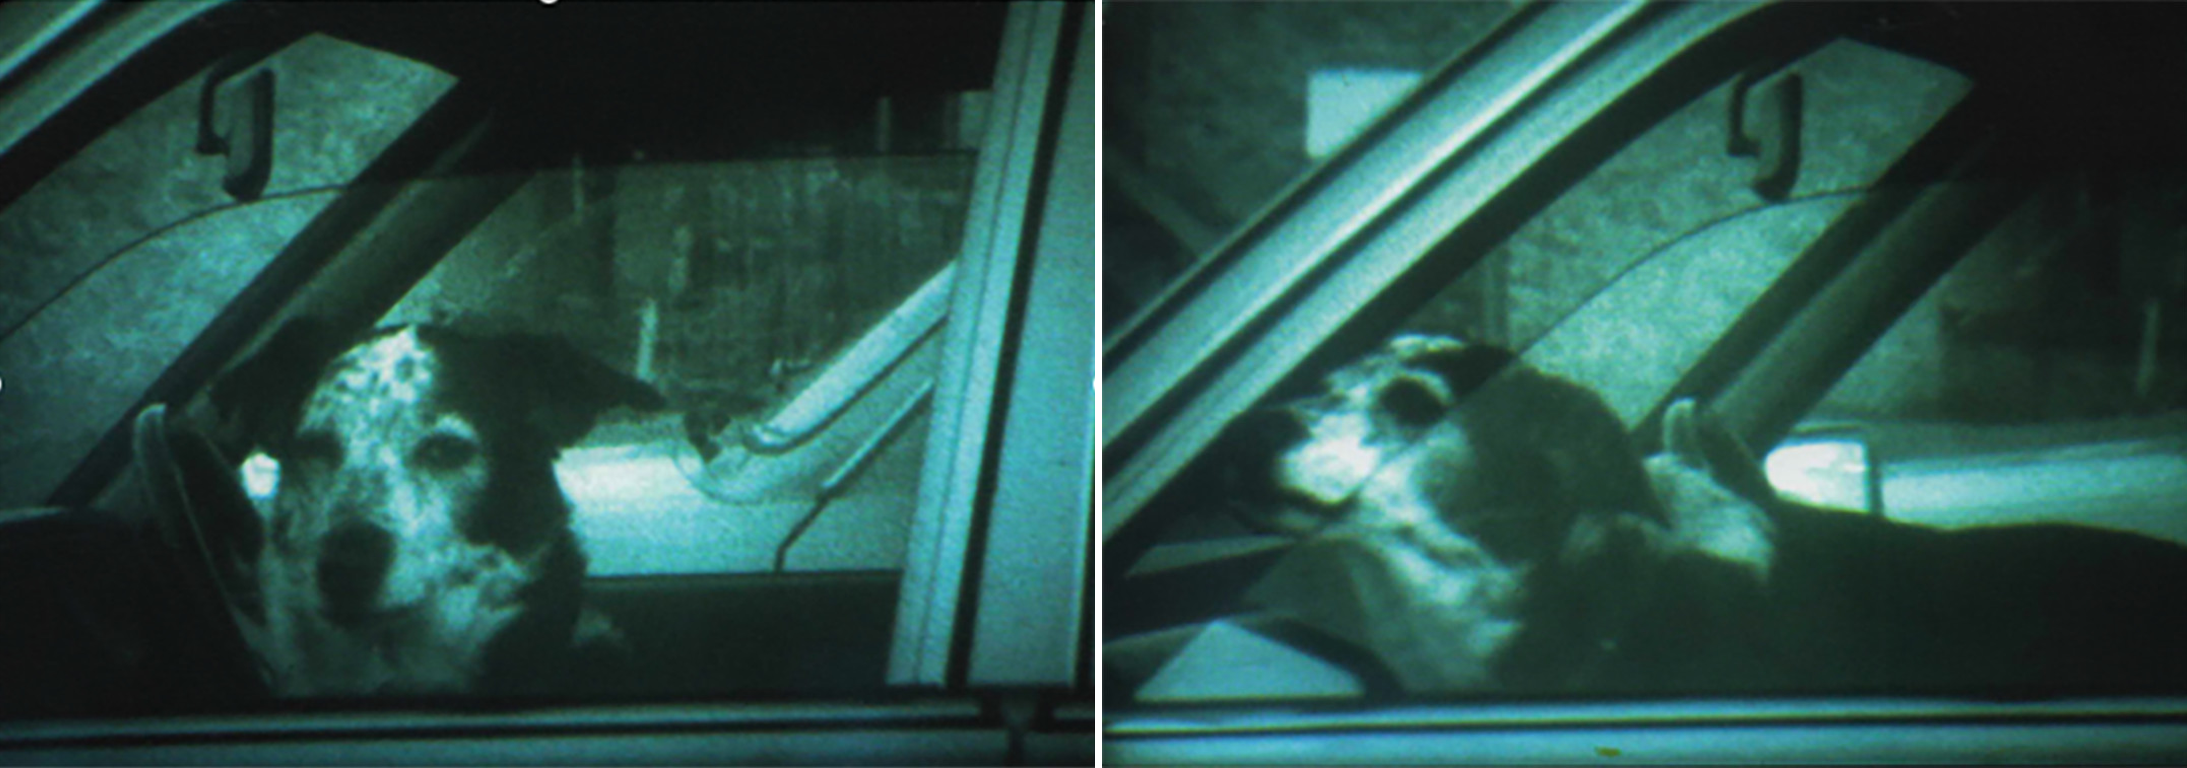 dogs in cars, waiting.png